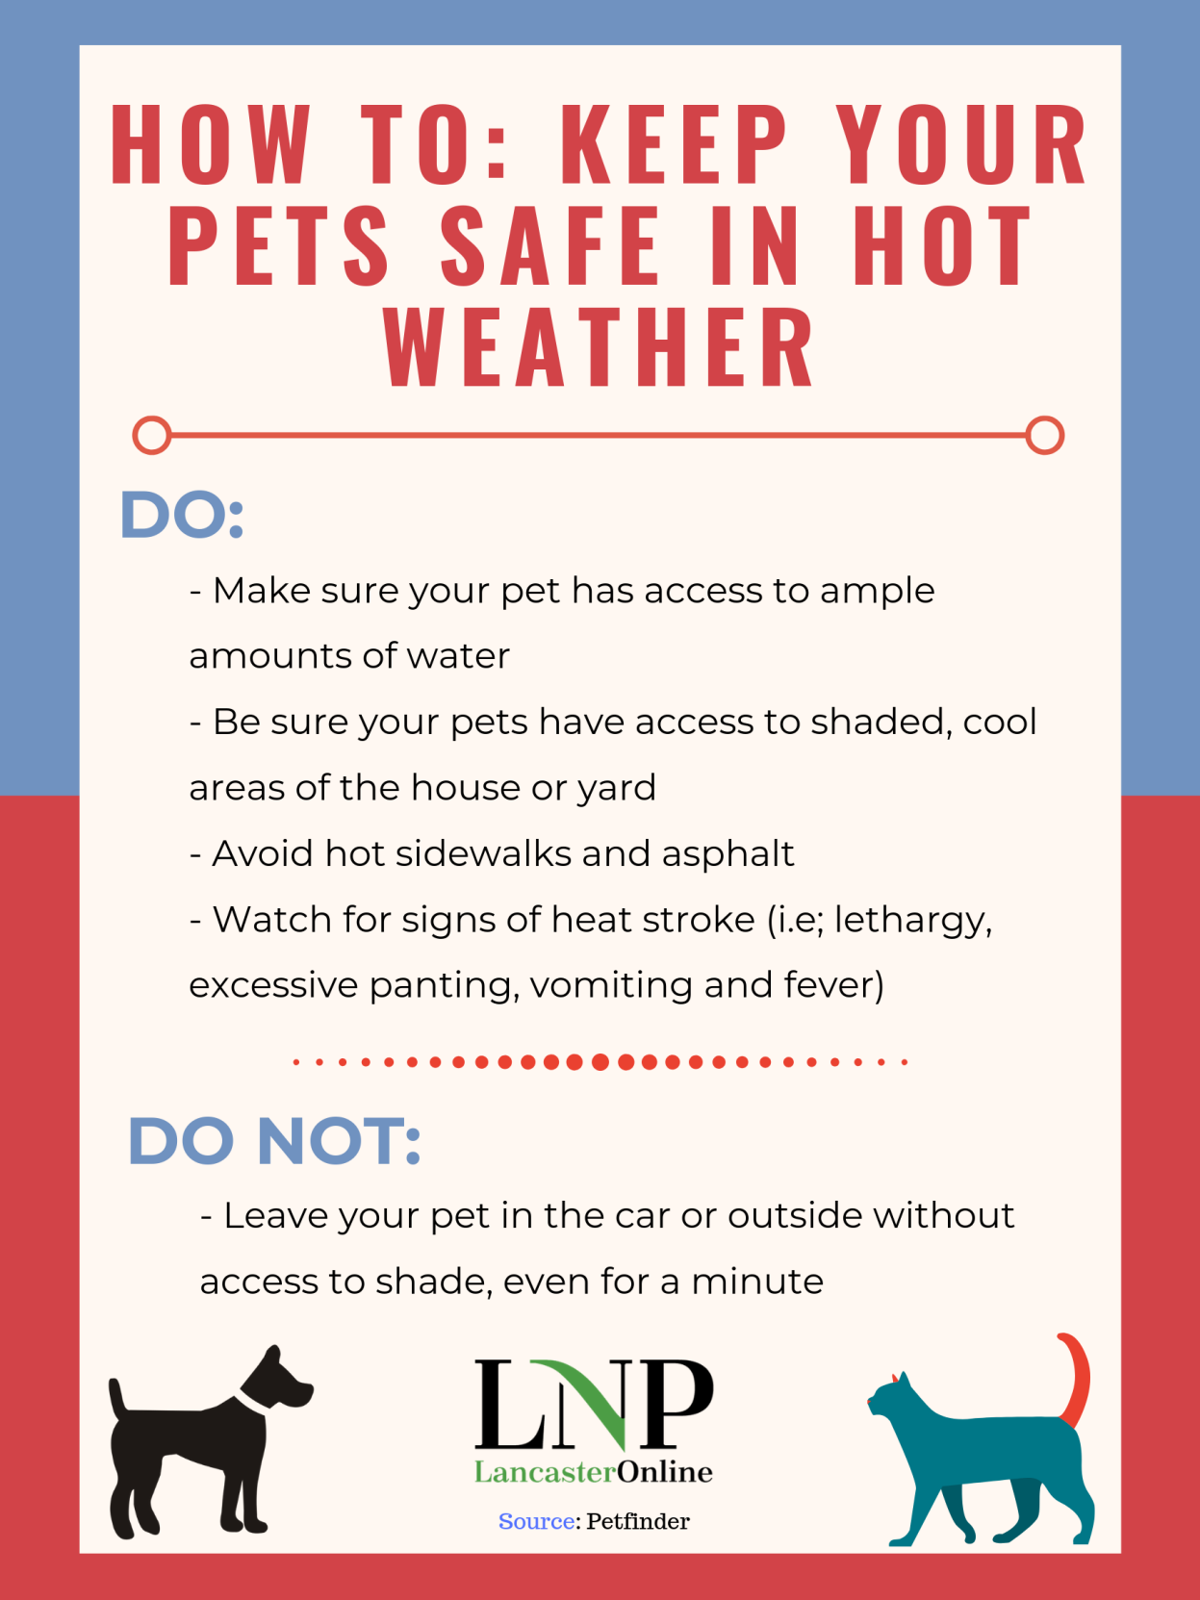 Keeping pets safe in heat [infographic]